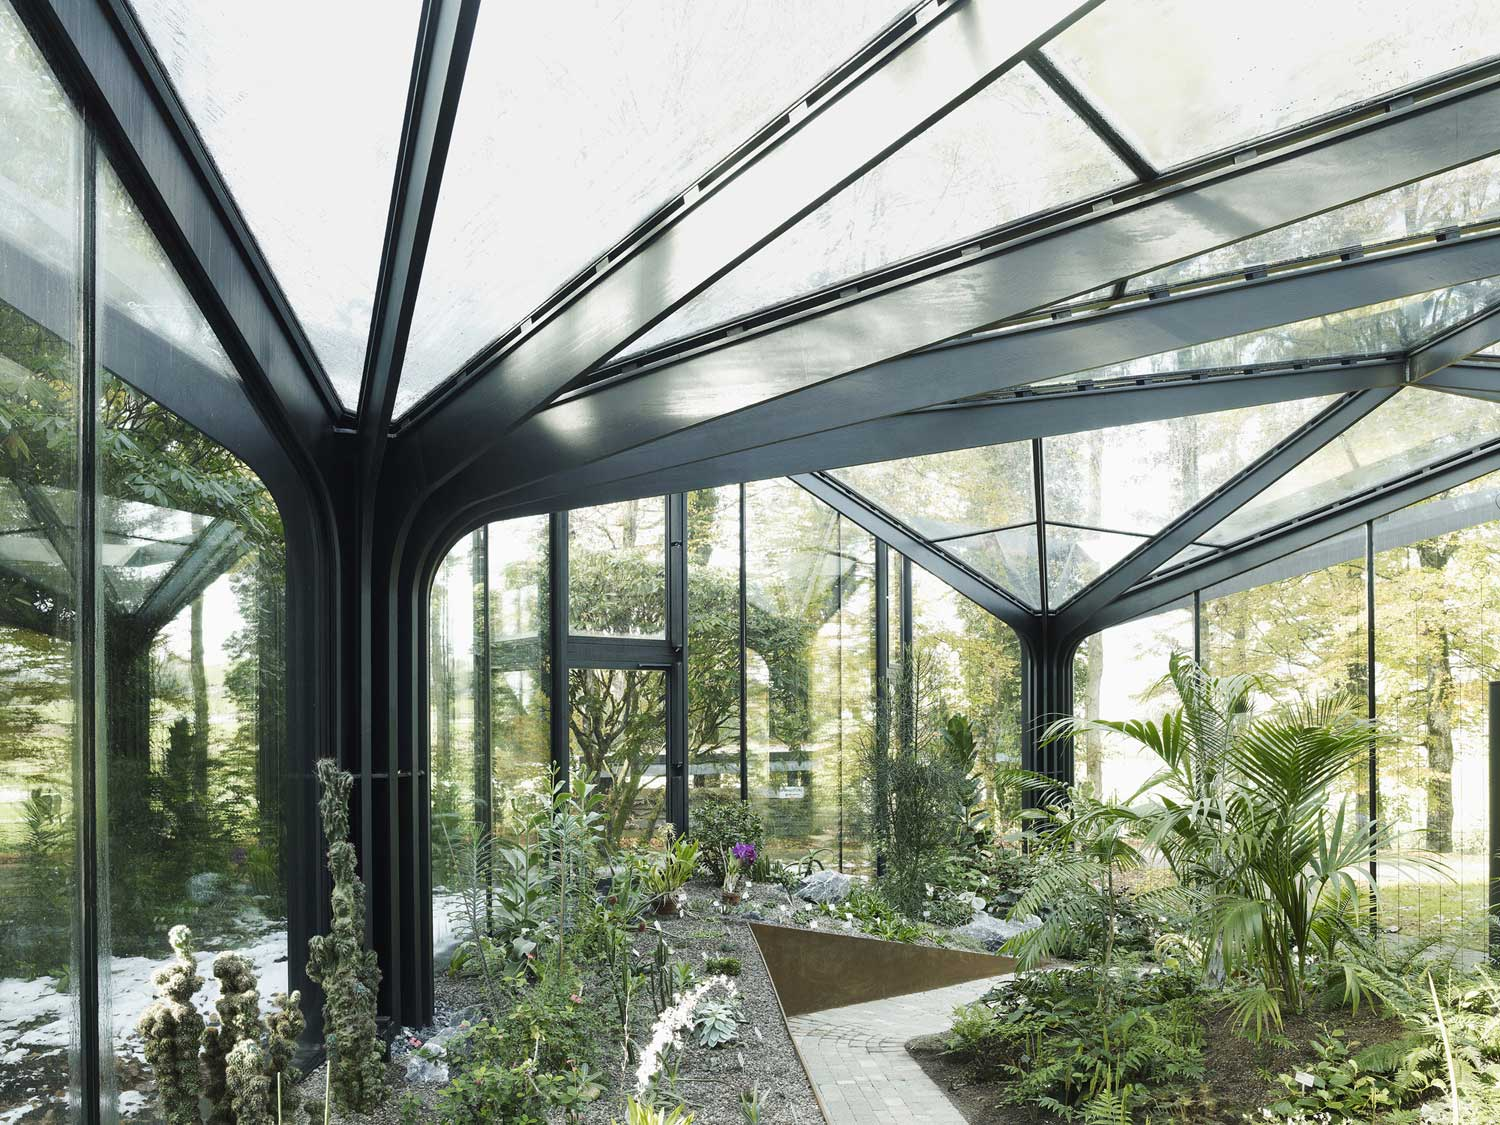 Greenhouse at Grüningen Botanical Garden by Buehrer Wuest Architekten | Yellowtrace